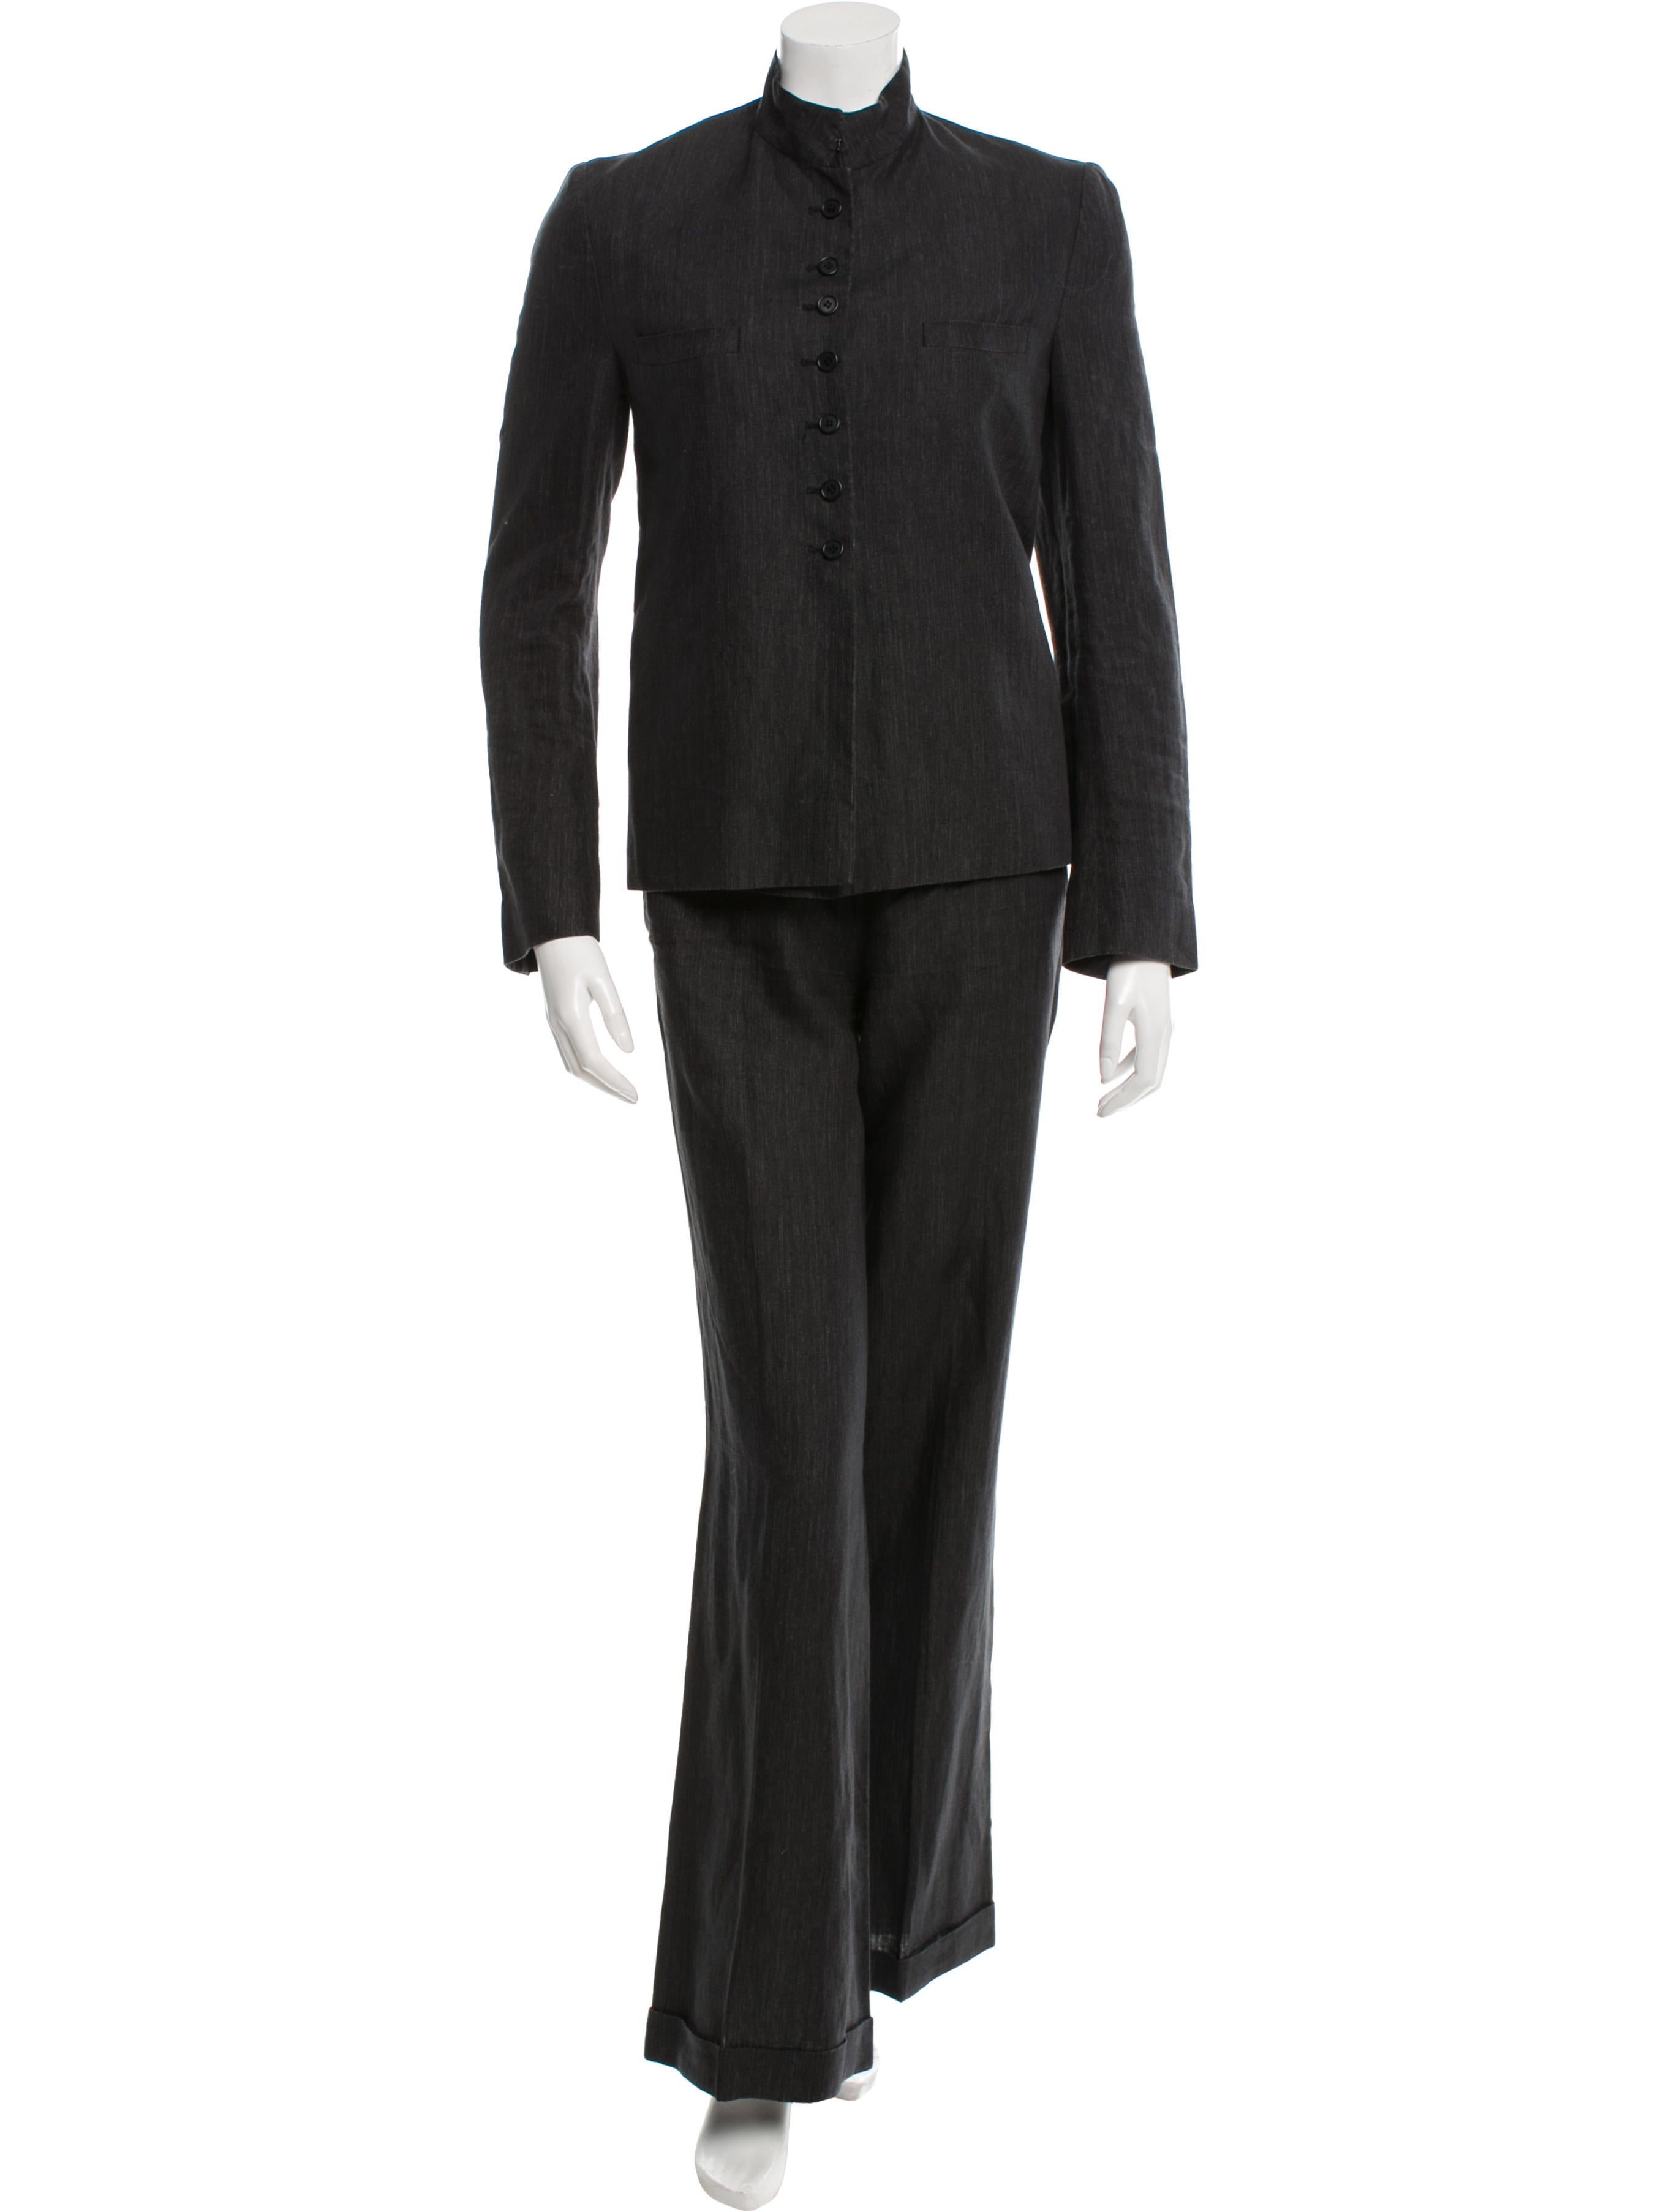 Perfect White Linen Pants Suit For Women With New Inspiration In Singapore U2013 Playzoa.com